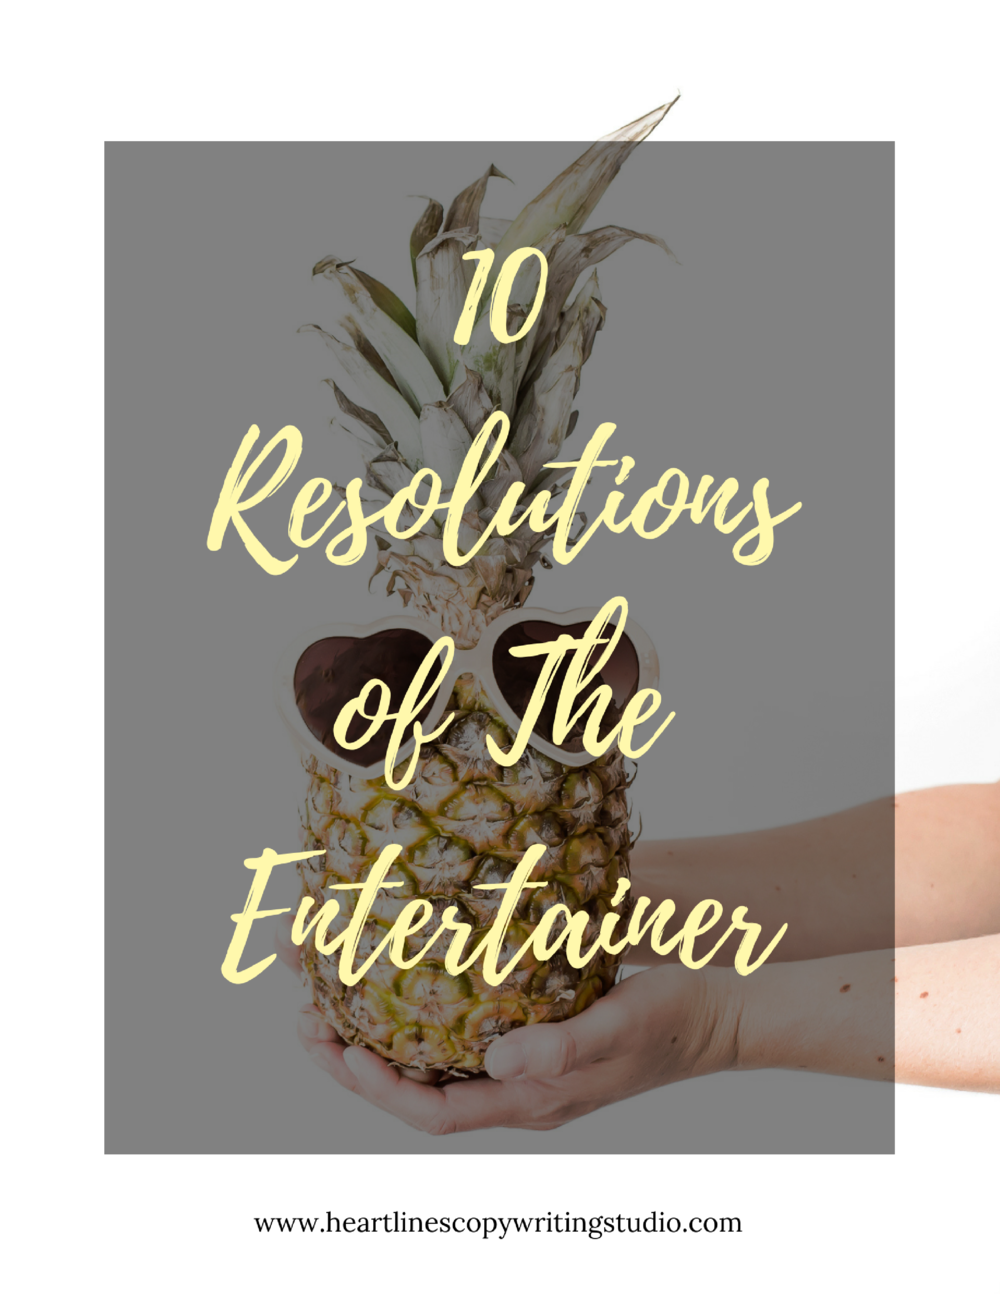 Download the PDF version of The 10 Resolutions of The Entertainer right here.